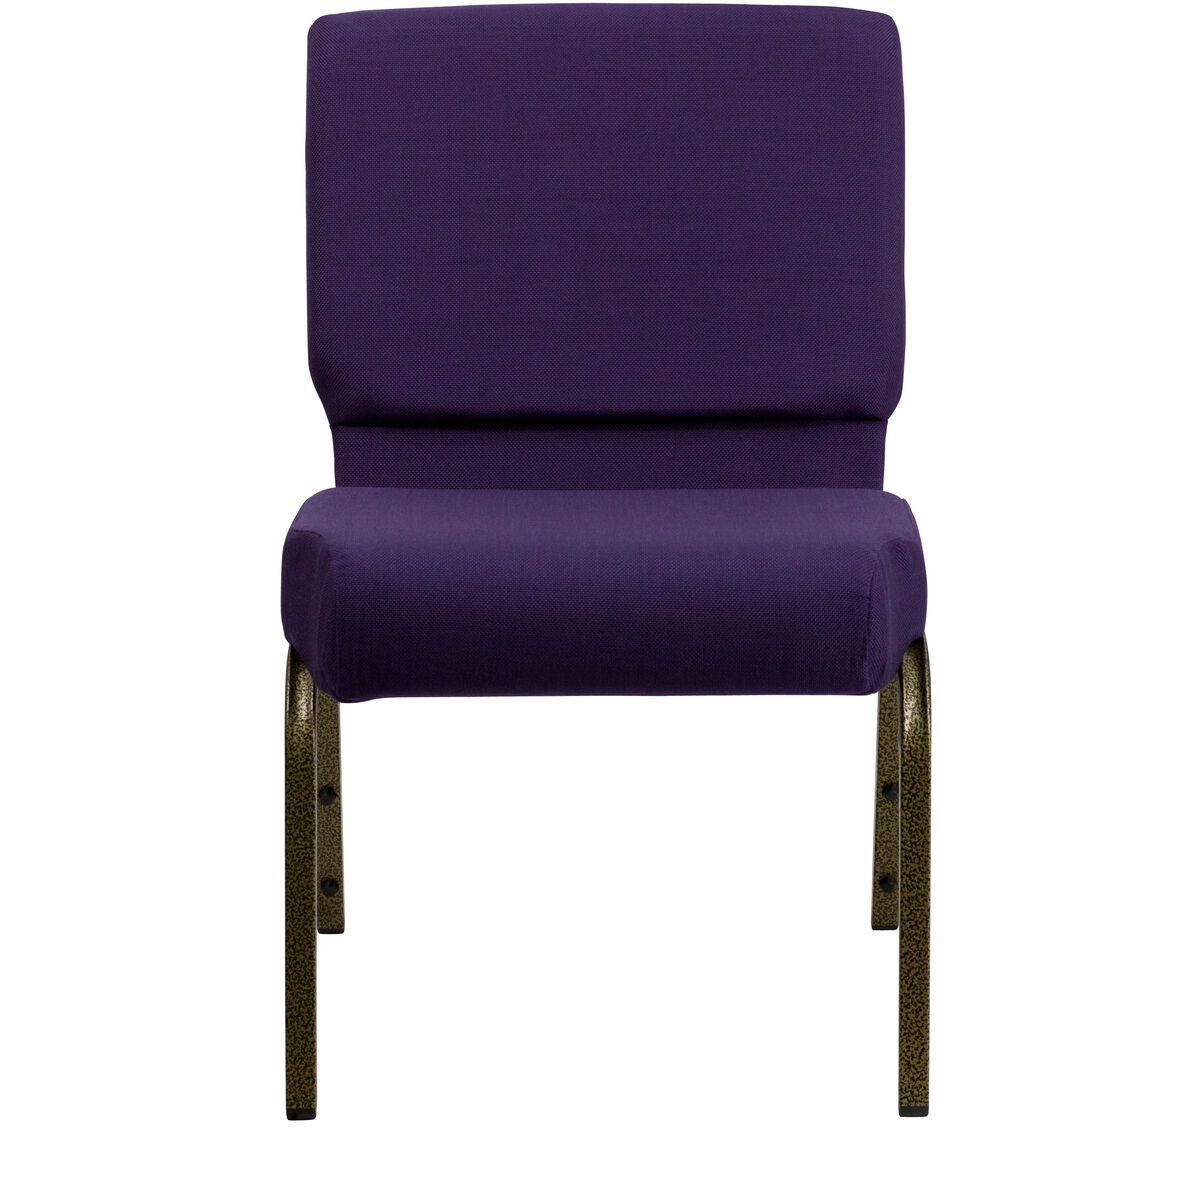 Purple Fabric Church Chair Fd Ch0221 4 Gv Roy Gg